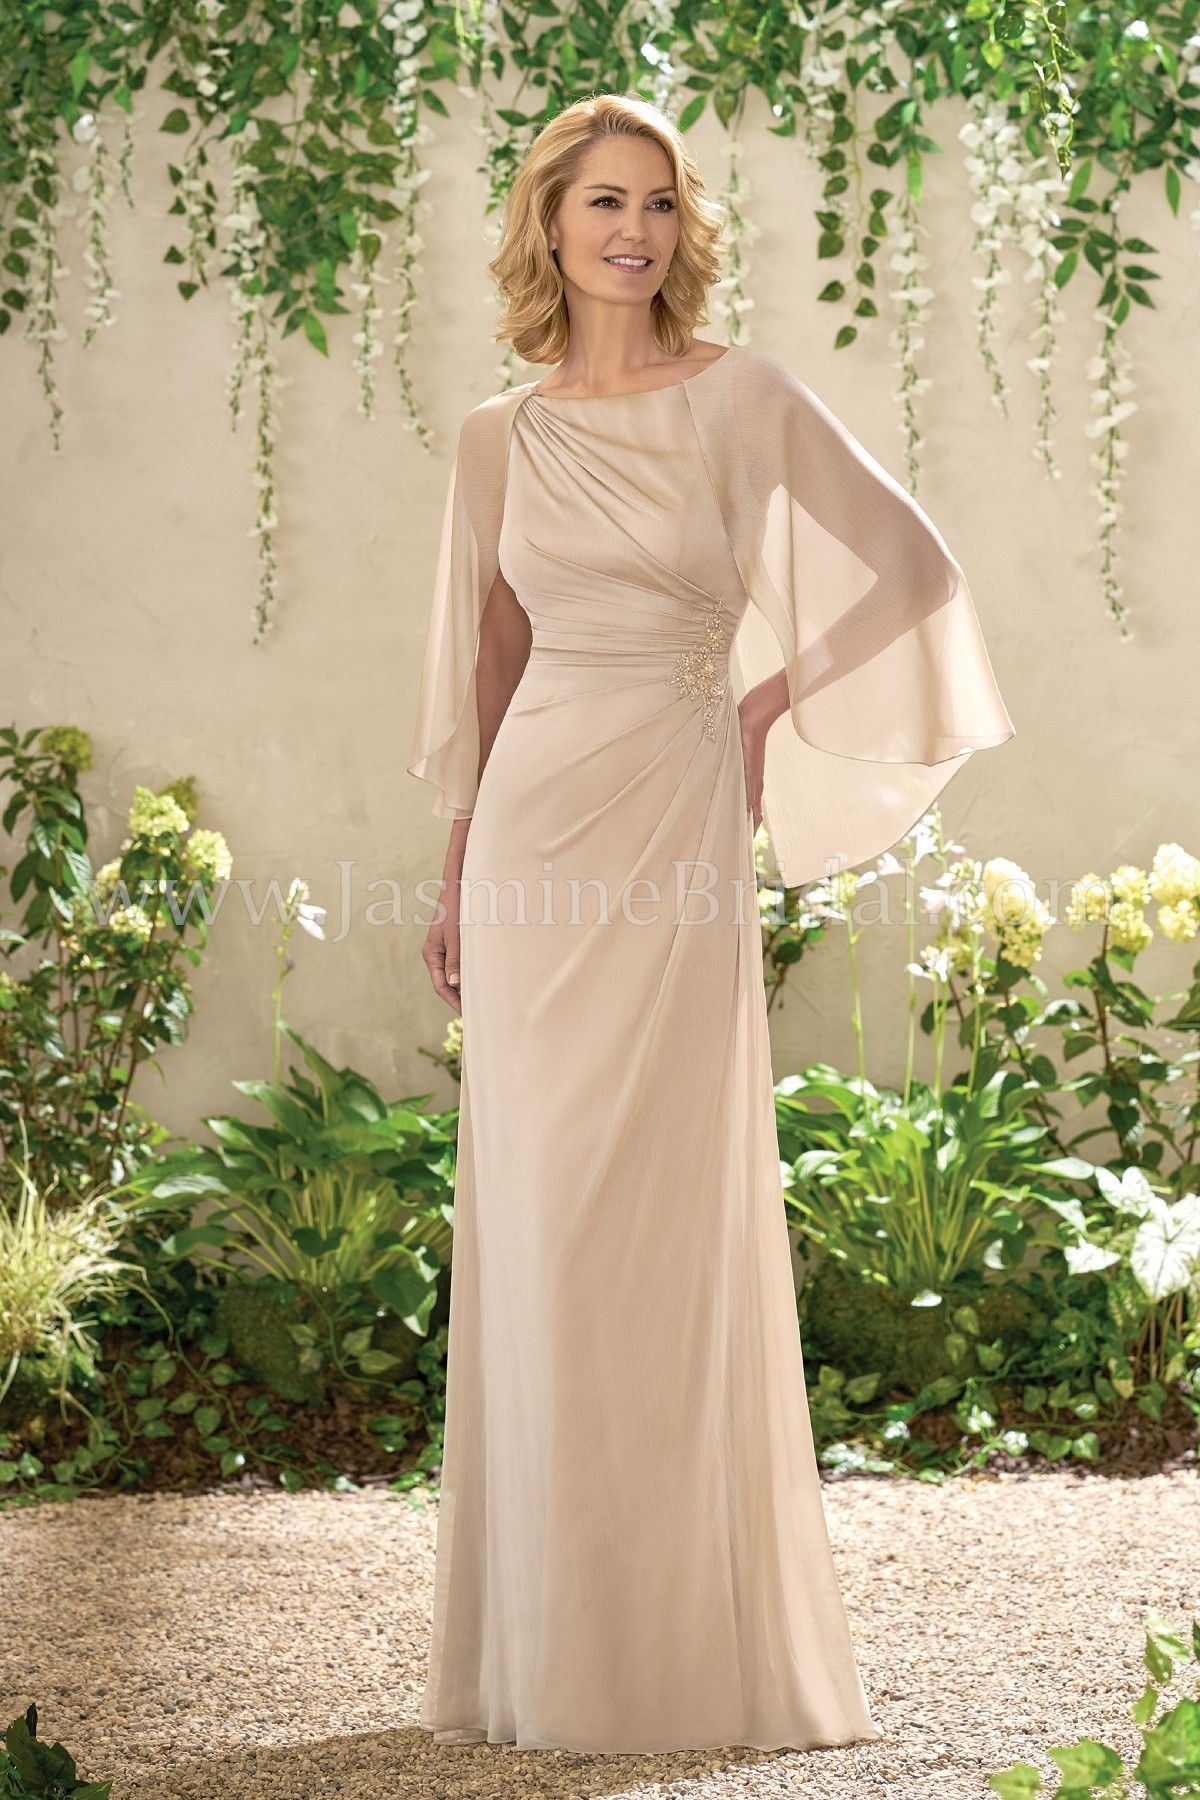 The Mother of Bride Dresses Jade J1161